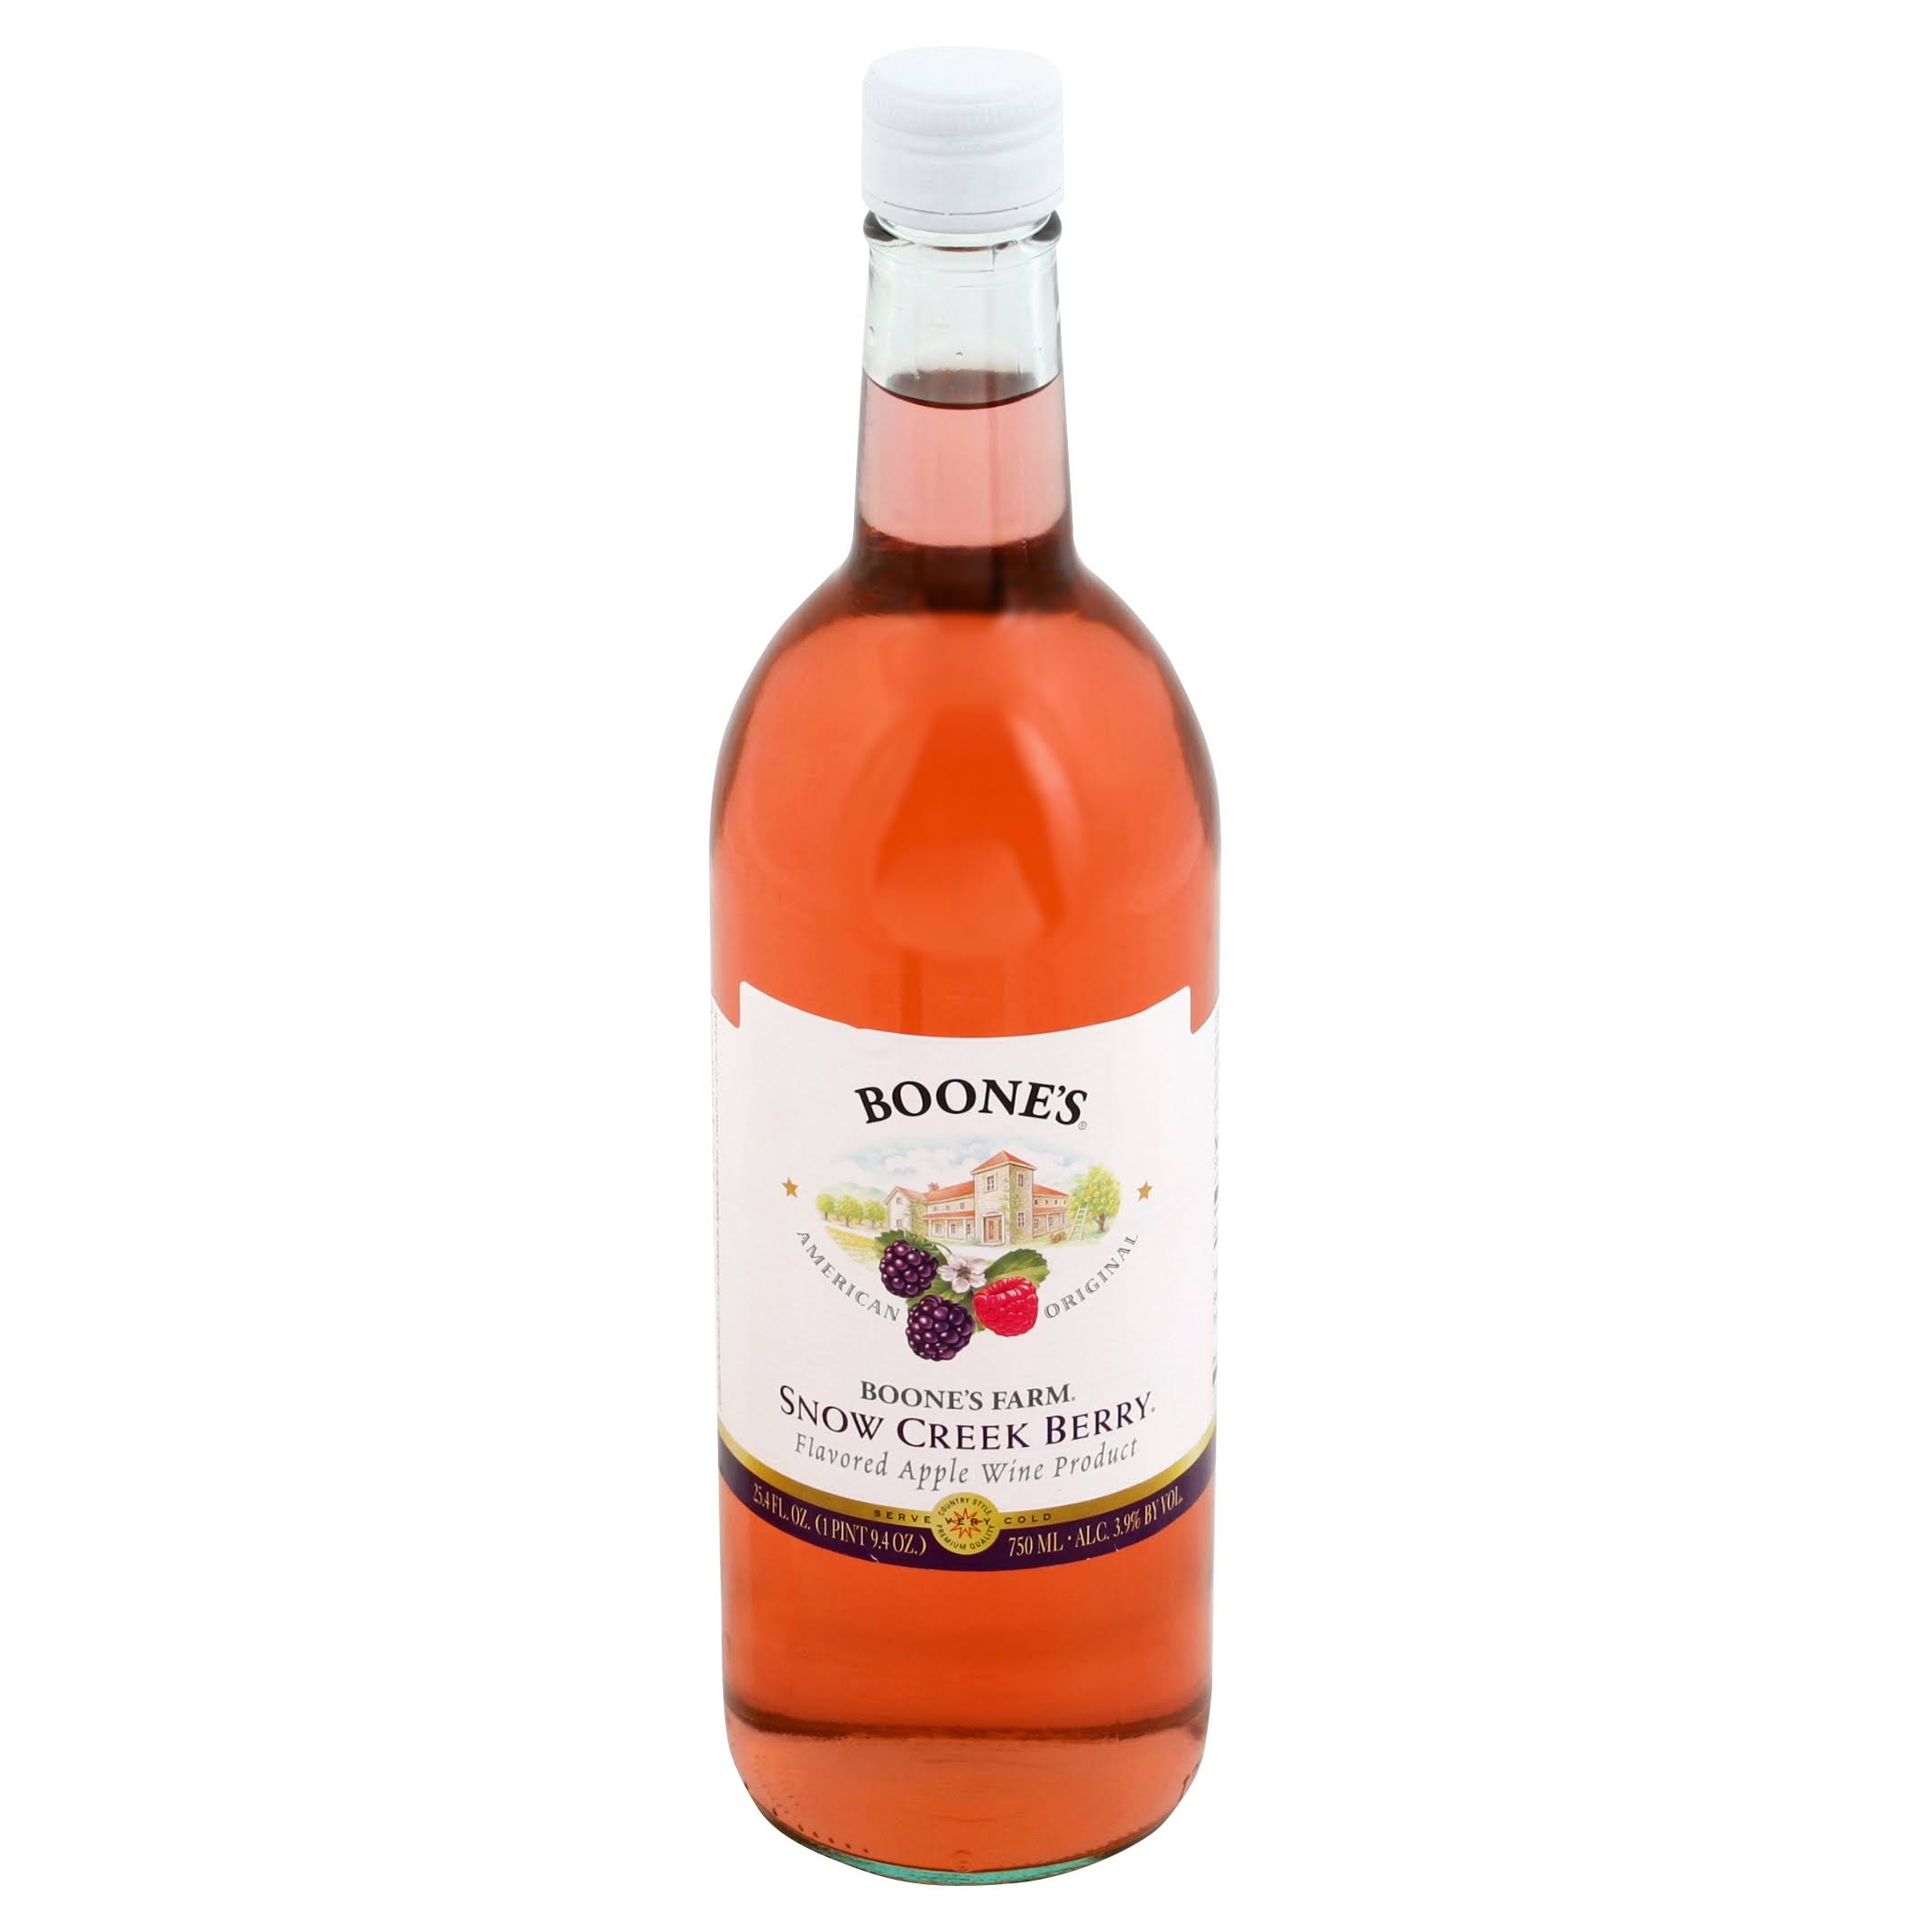 Boone's Farm Apple Wine Product - Snow Creek Berry Flavored, 25.40floz